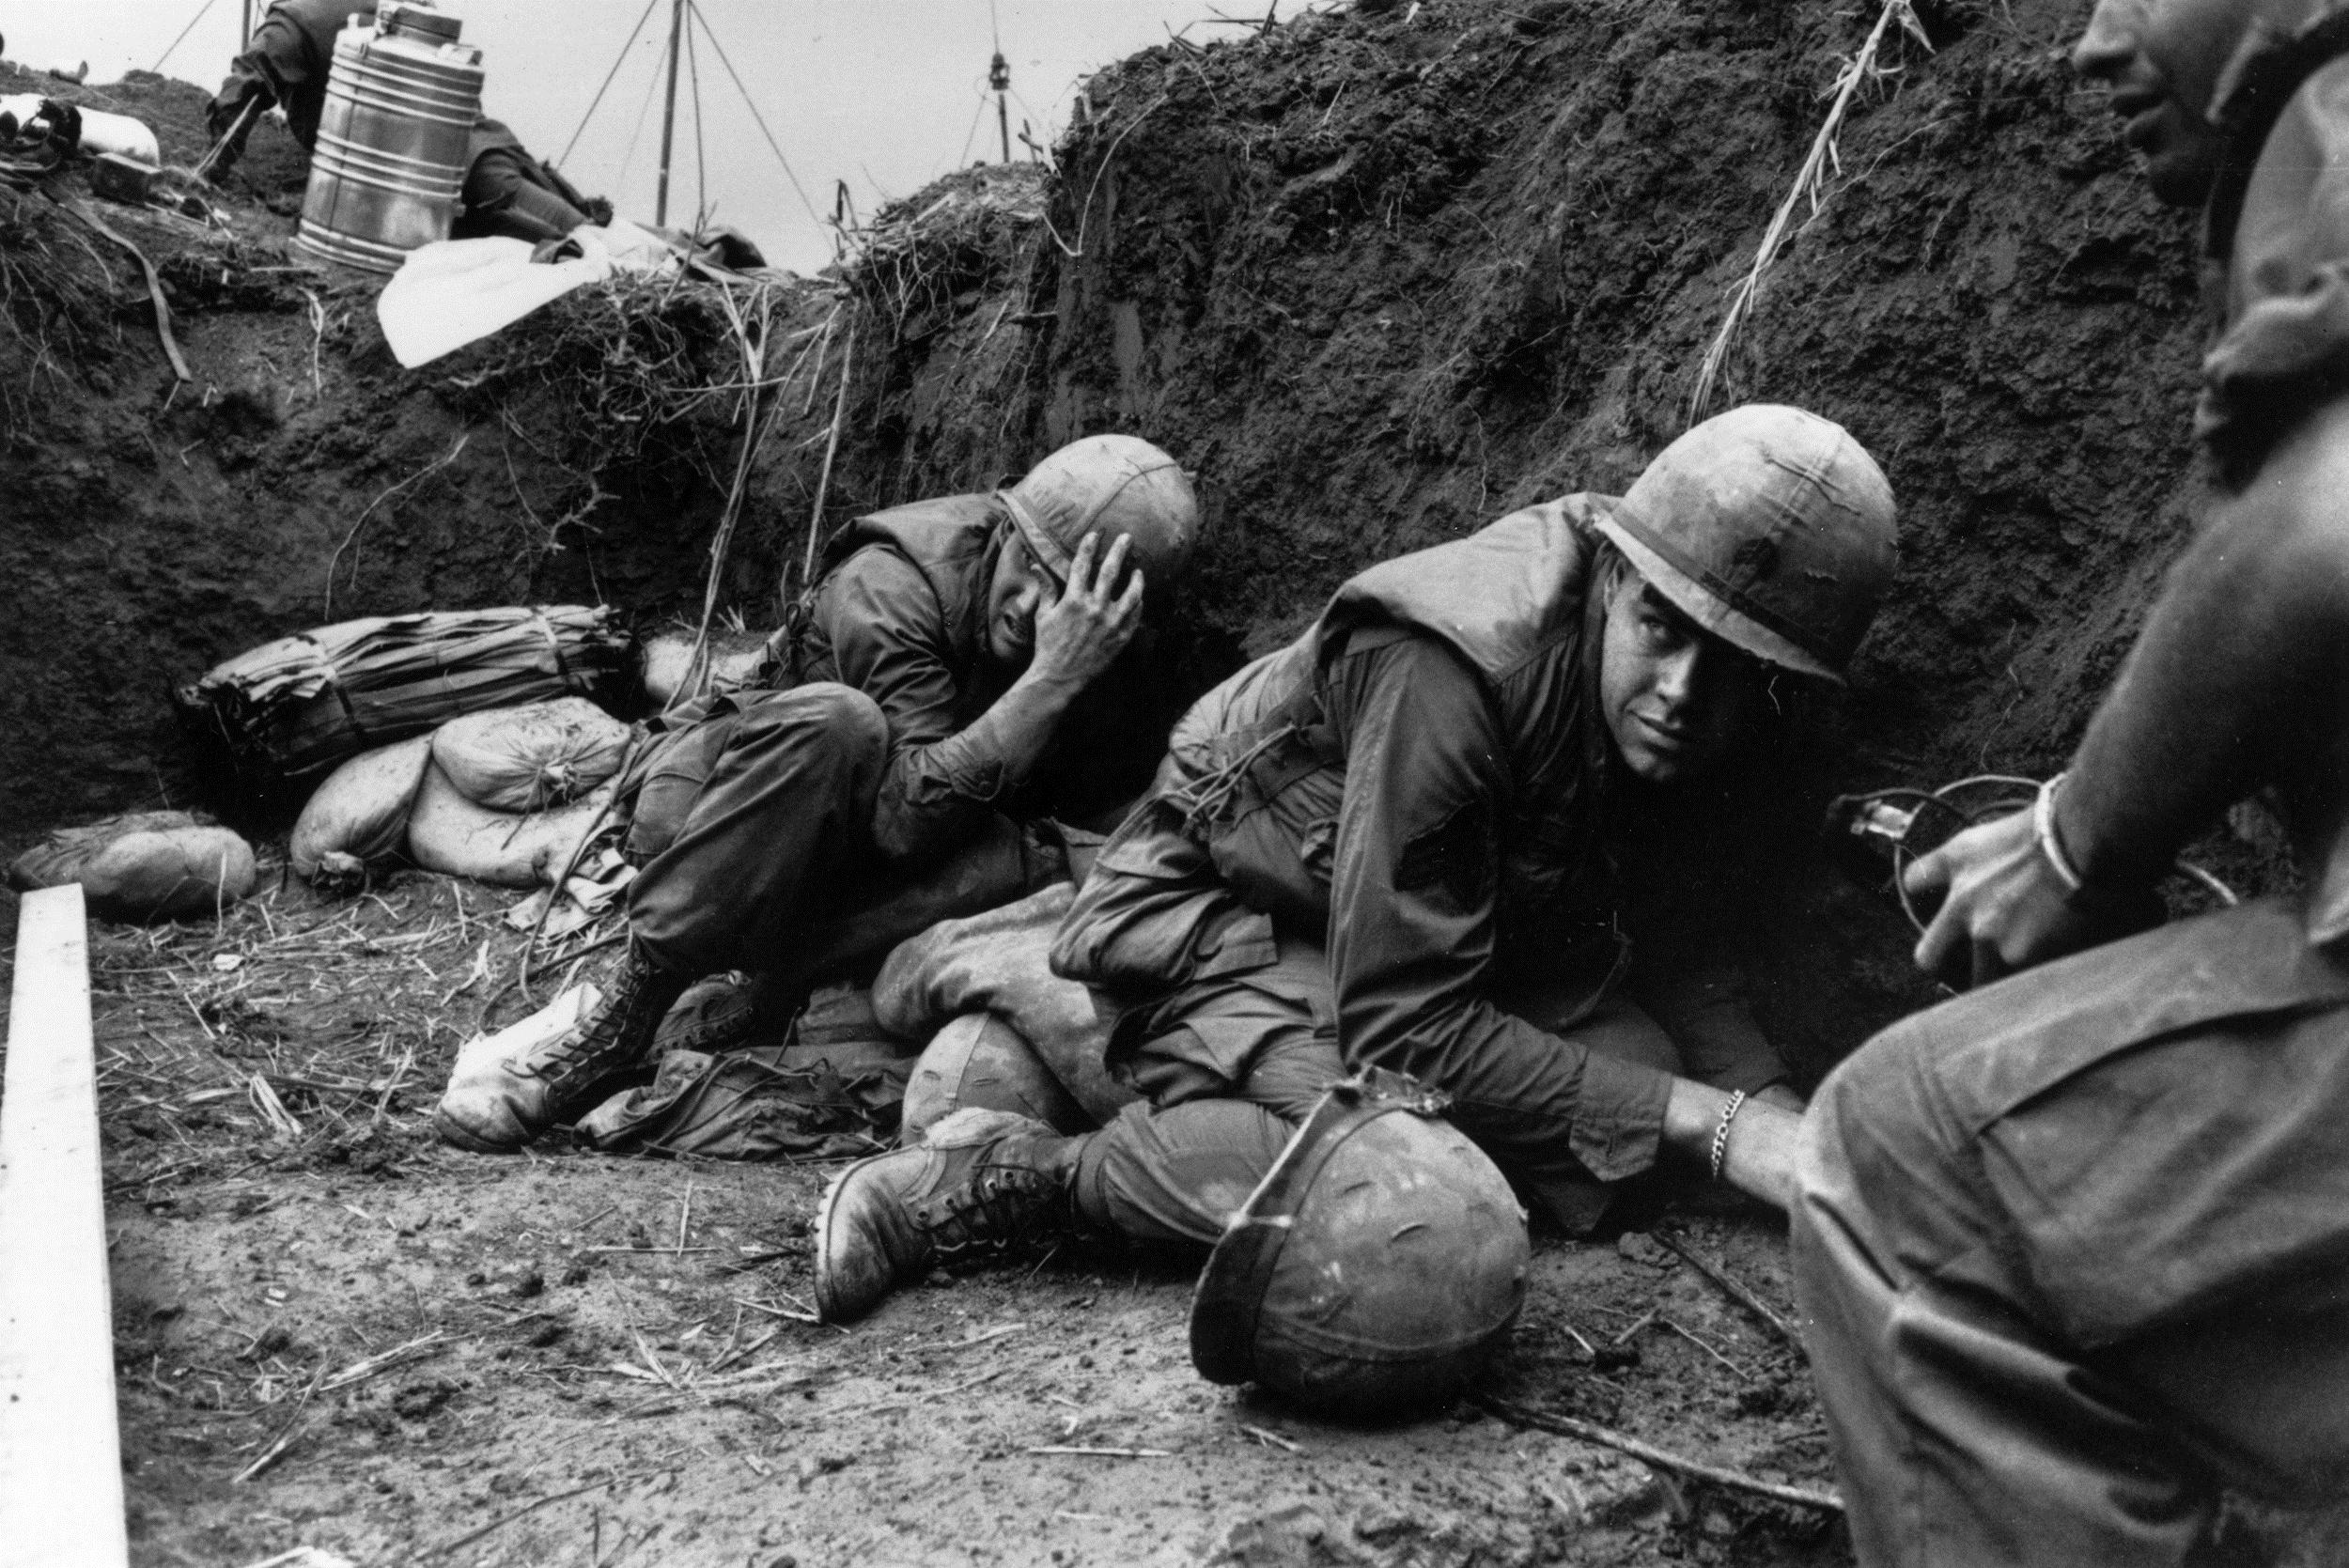 ptsd in the vietnam war Assuming that someone has ptsd because he or she served in vietnam or was a pow does a great disservice to all the people who did those things and experienced ptsd, as well as those who did.